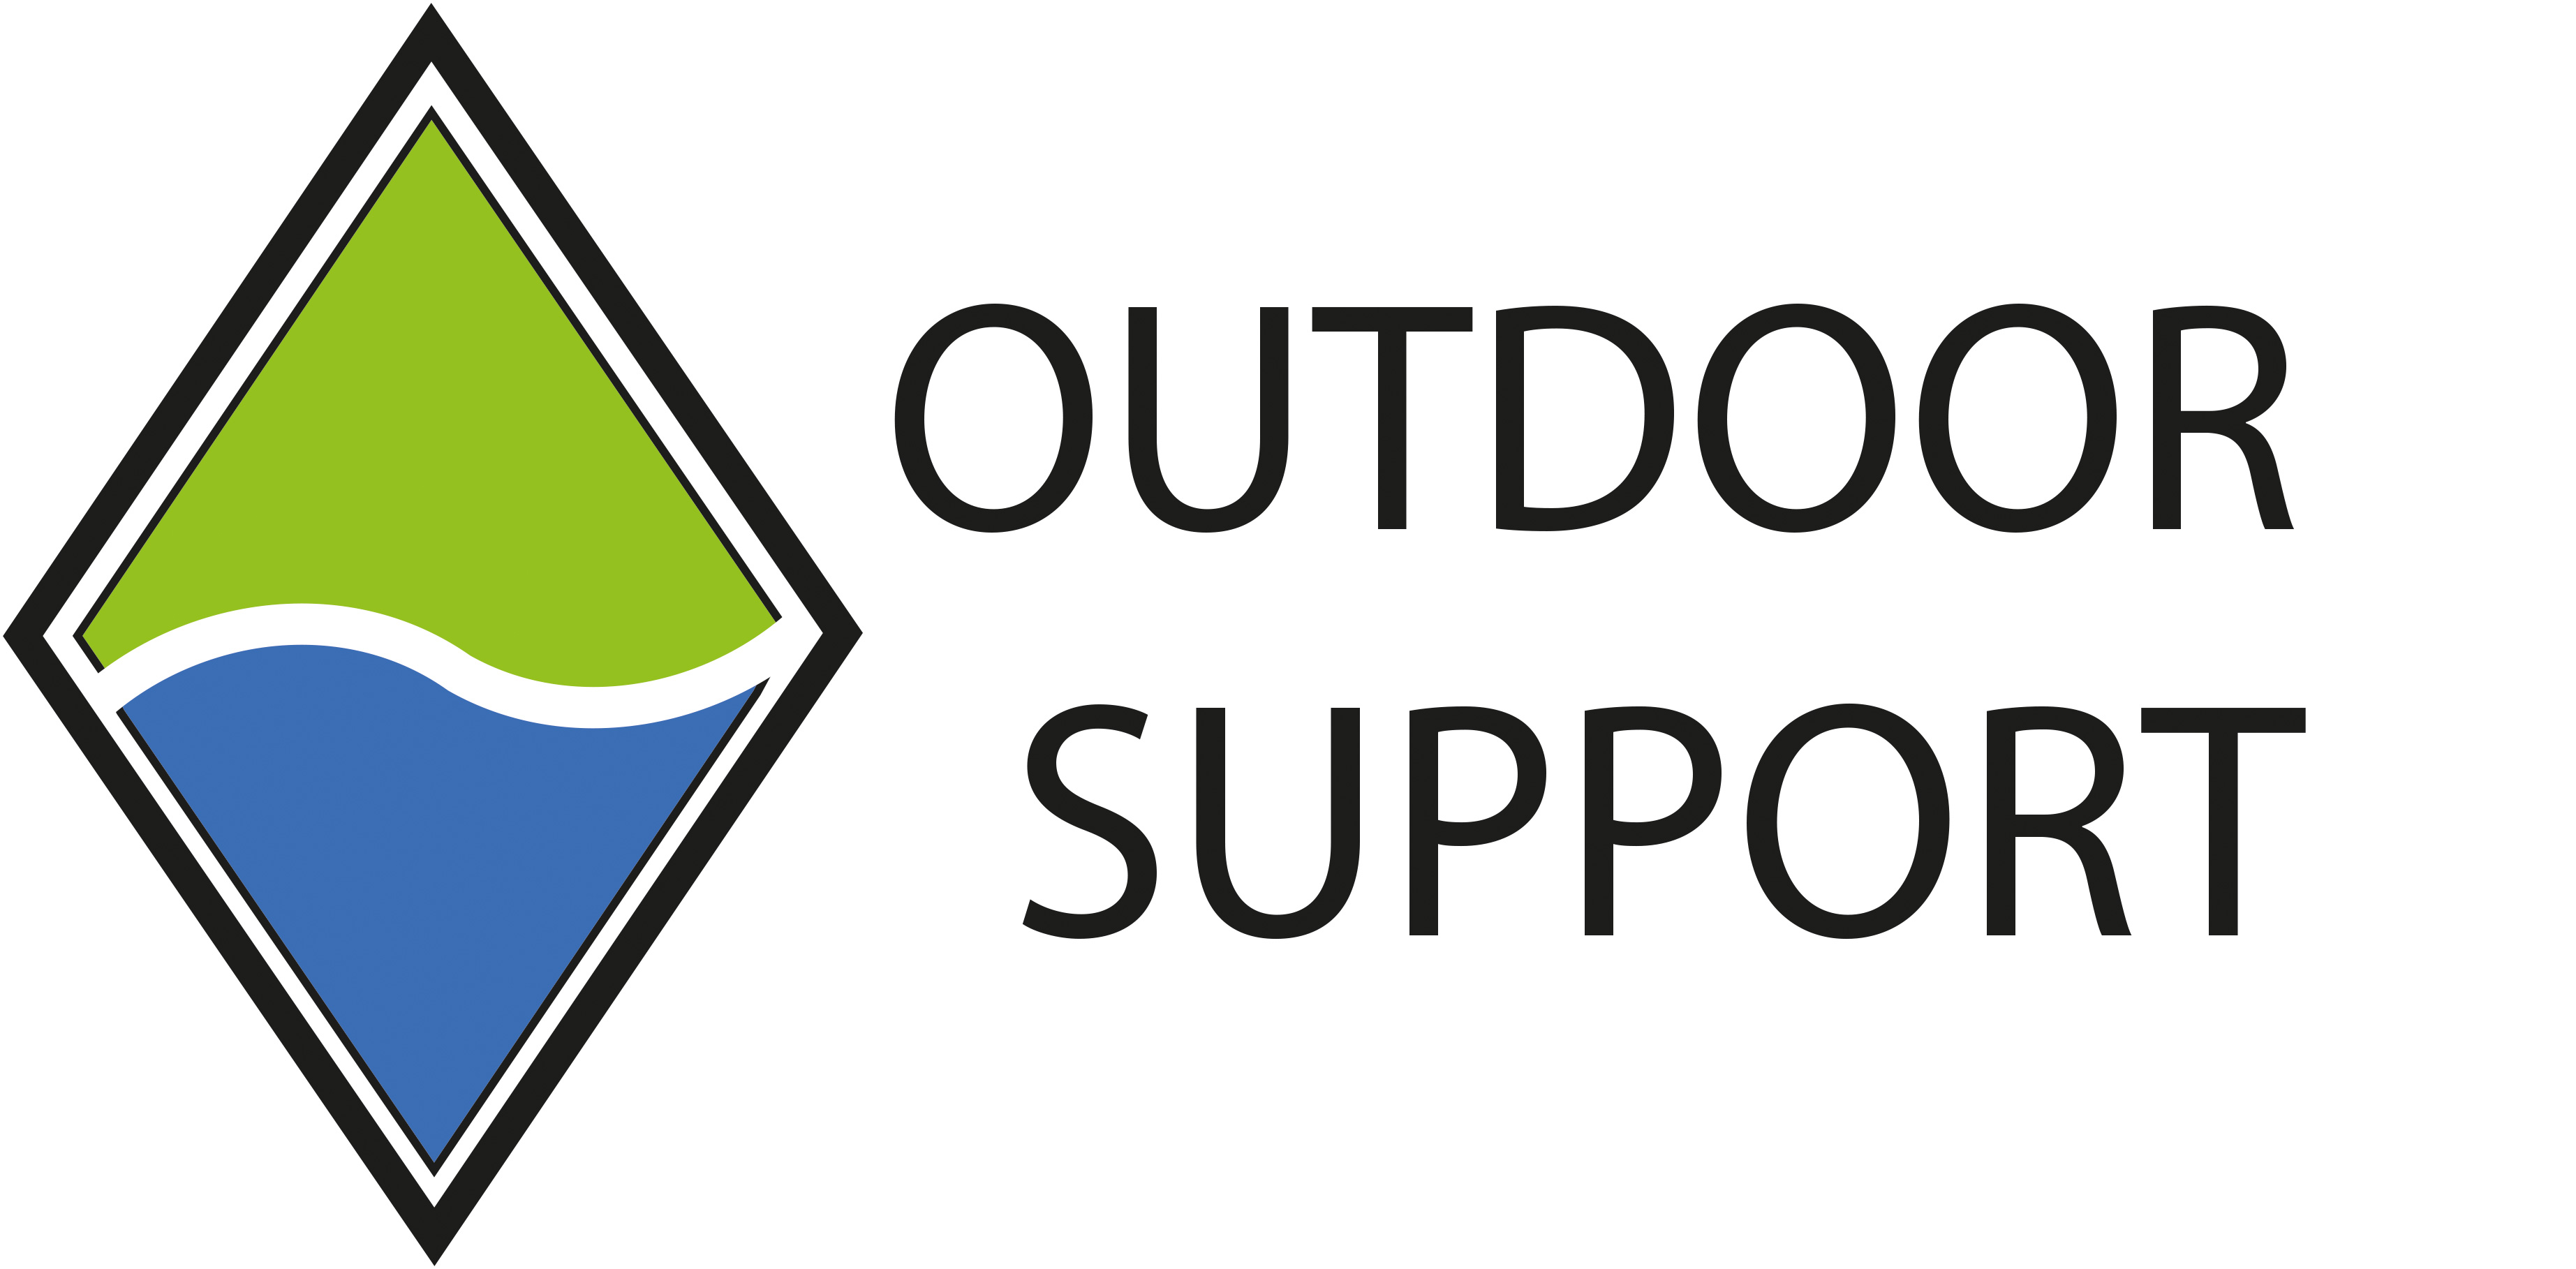 Outdoor support is an activitycompany with sking, hiking, climbing in Norway. Kayaking, snowshoing.